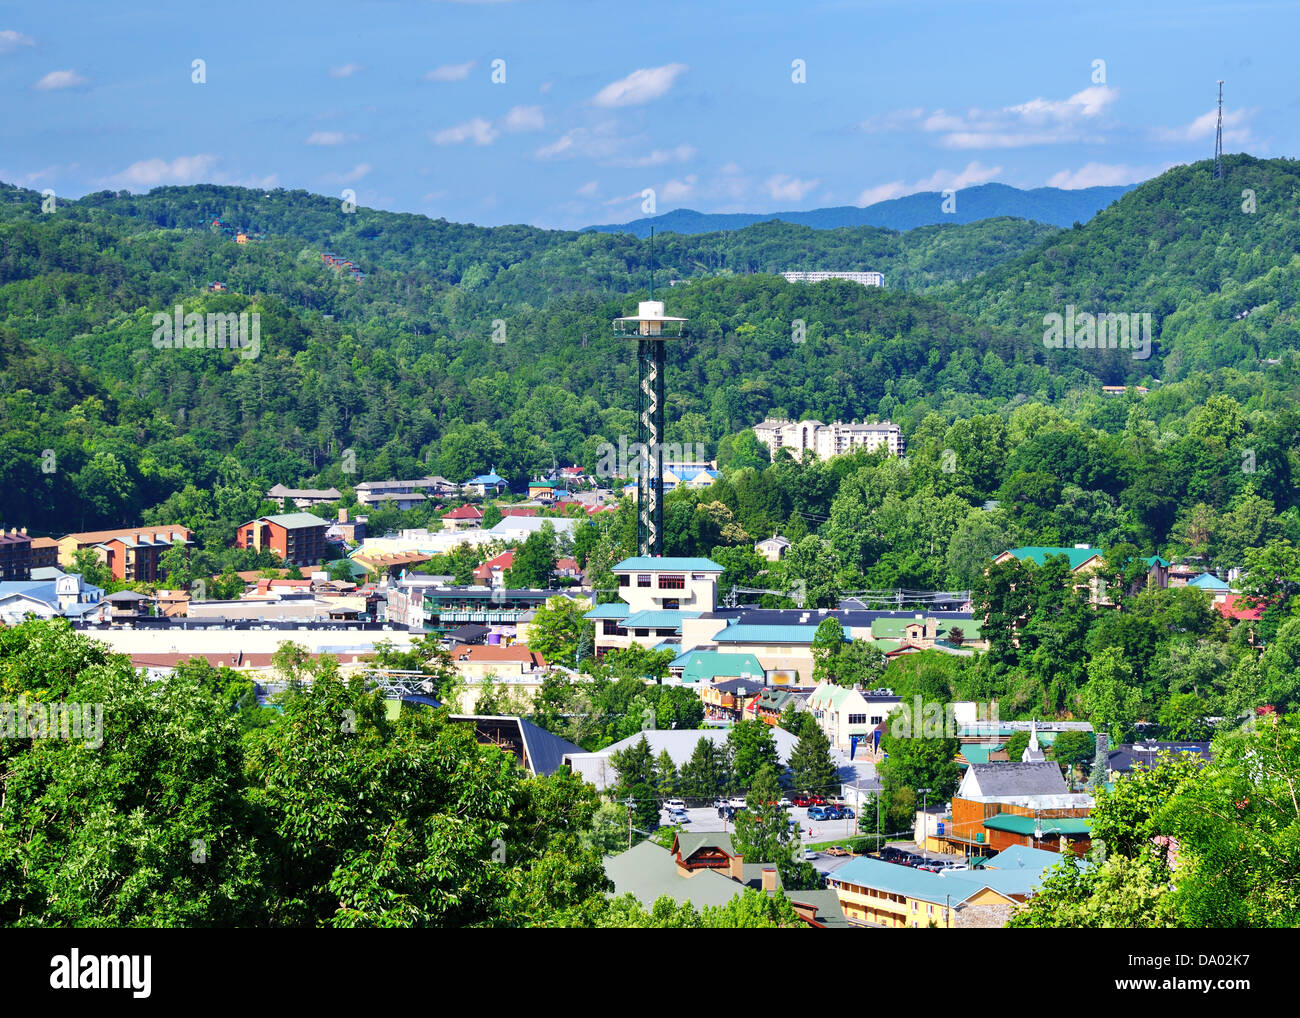 The skyline of downtown Gatlinburg, Tennessee, USA in the Great Smoky Mountains. Stock Photo